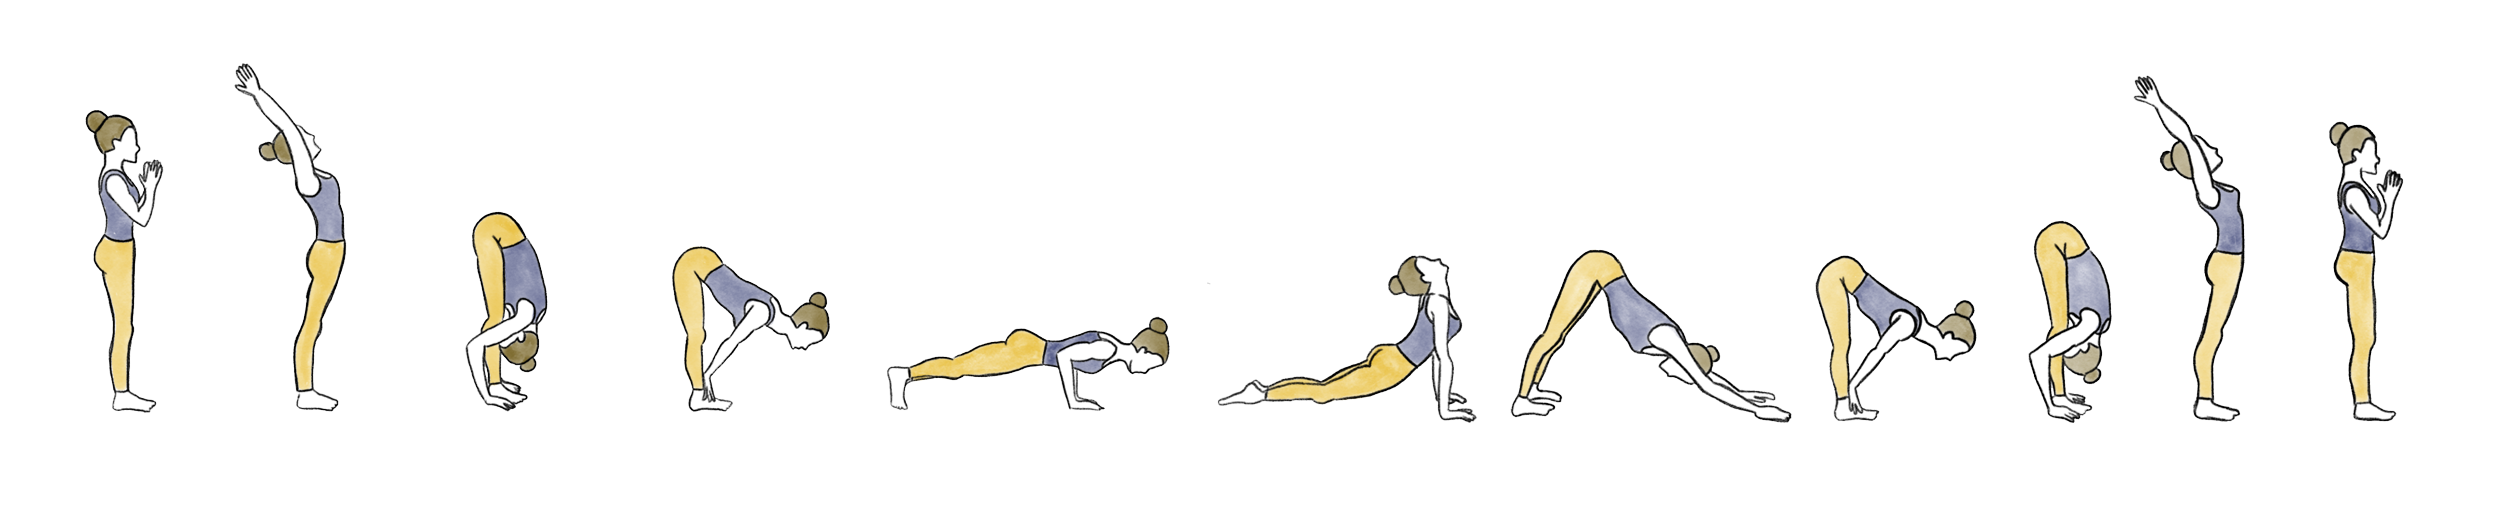 SunSalutation_Line_FillinInWhite.png